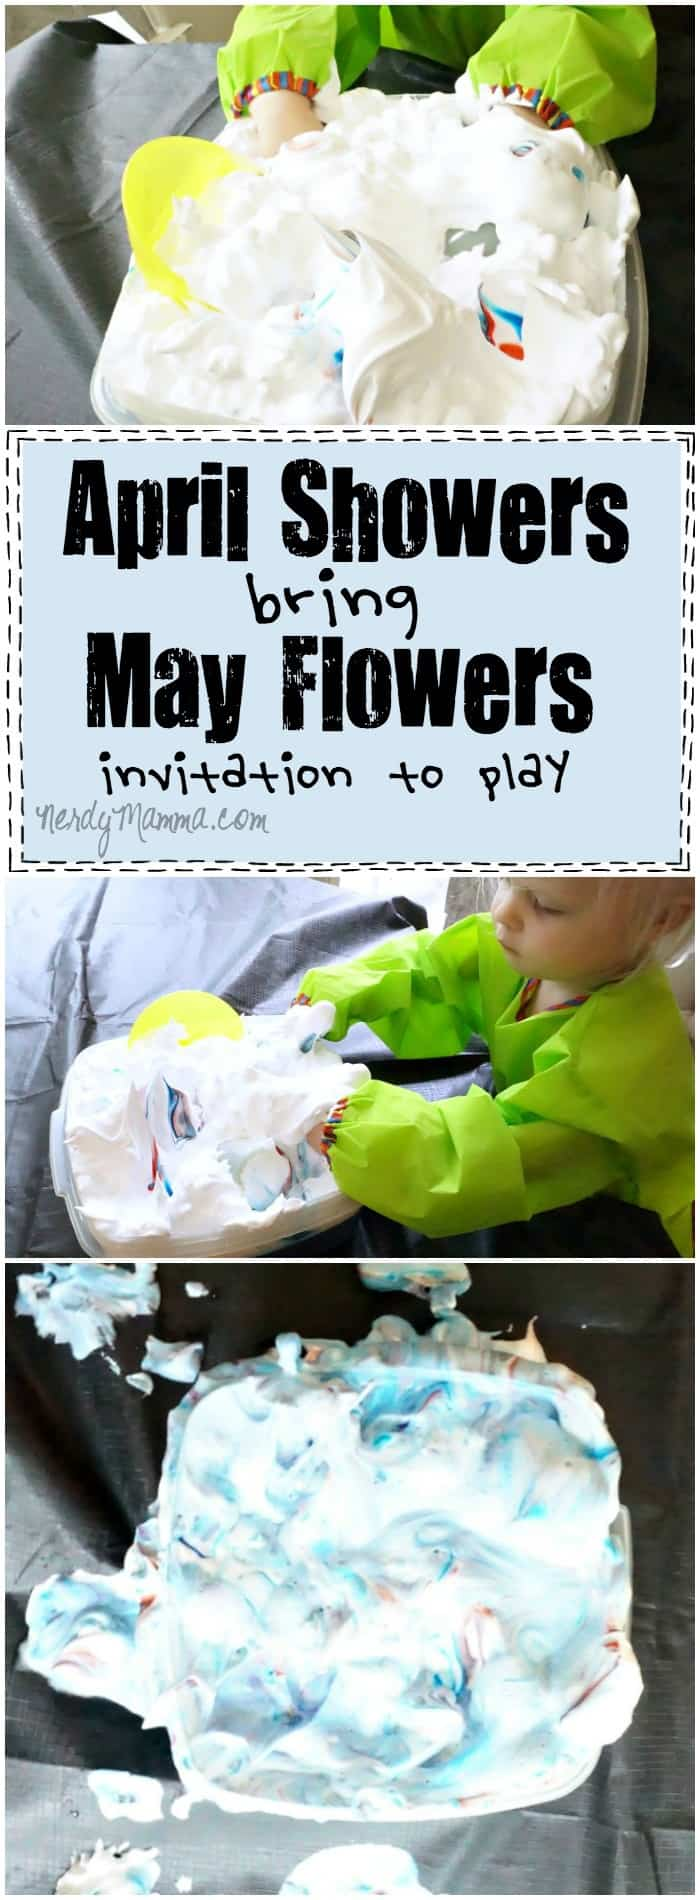 This April Showers bring May Flowers Invitation to Play is so simple! I love the idea--and it would probably keep my toddler busy for hours!